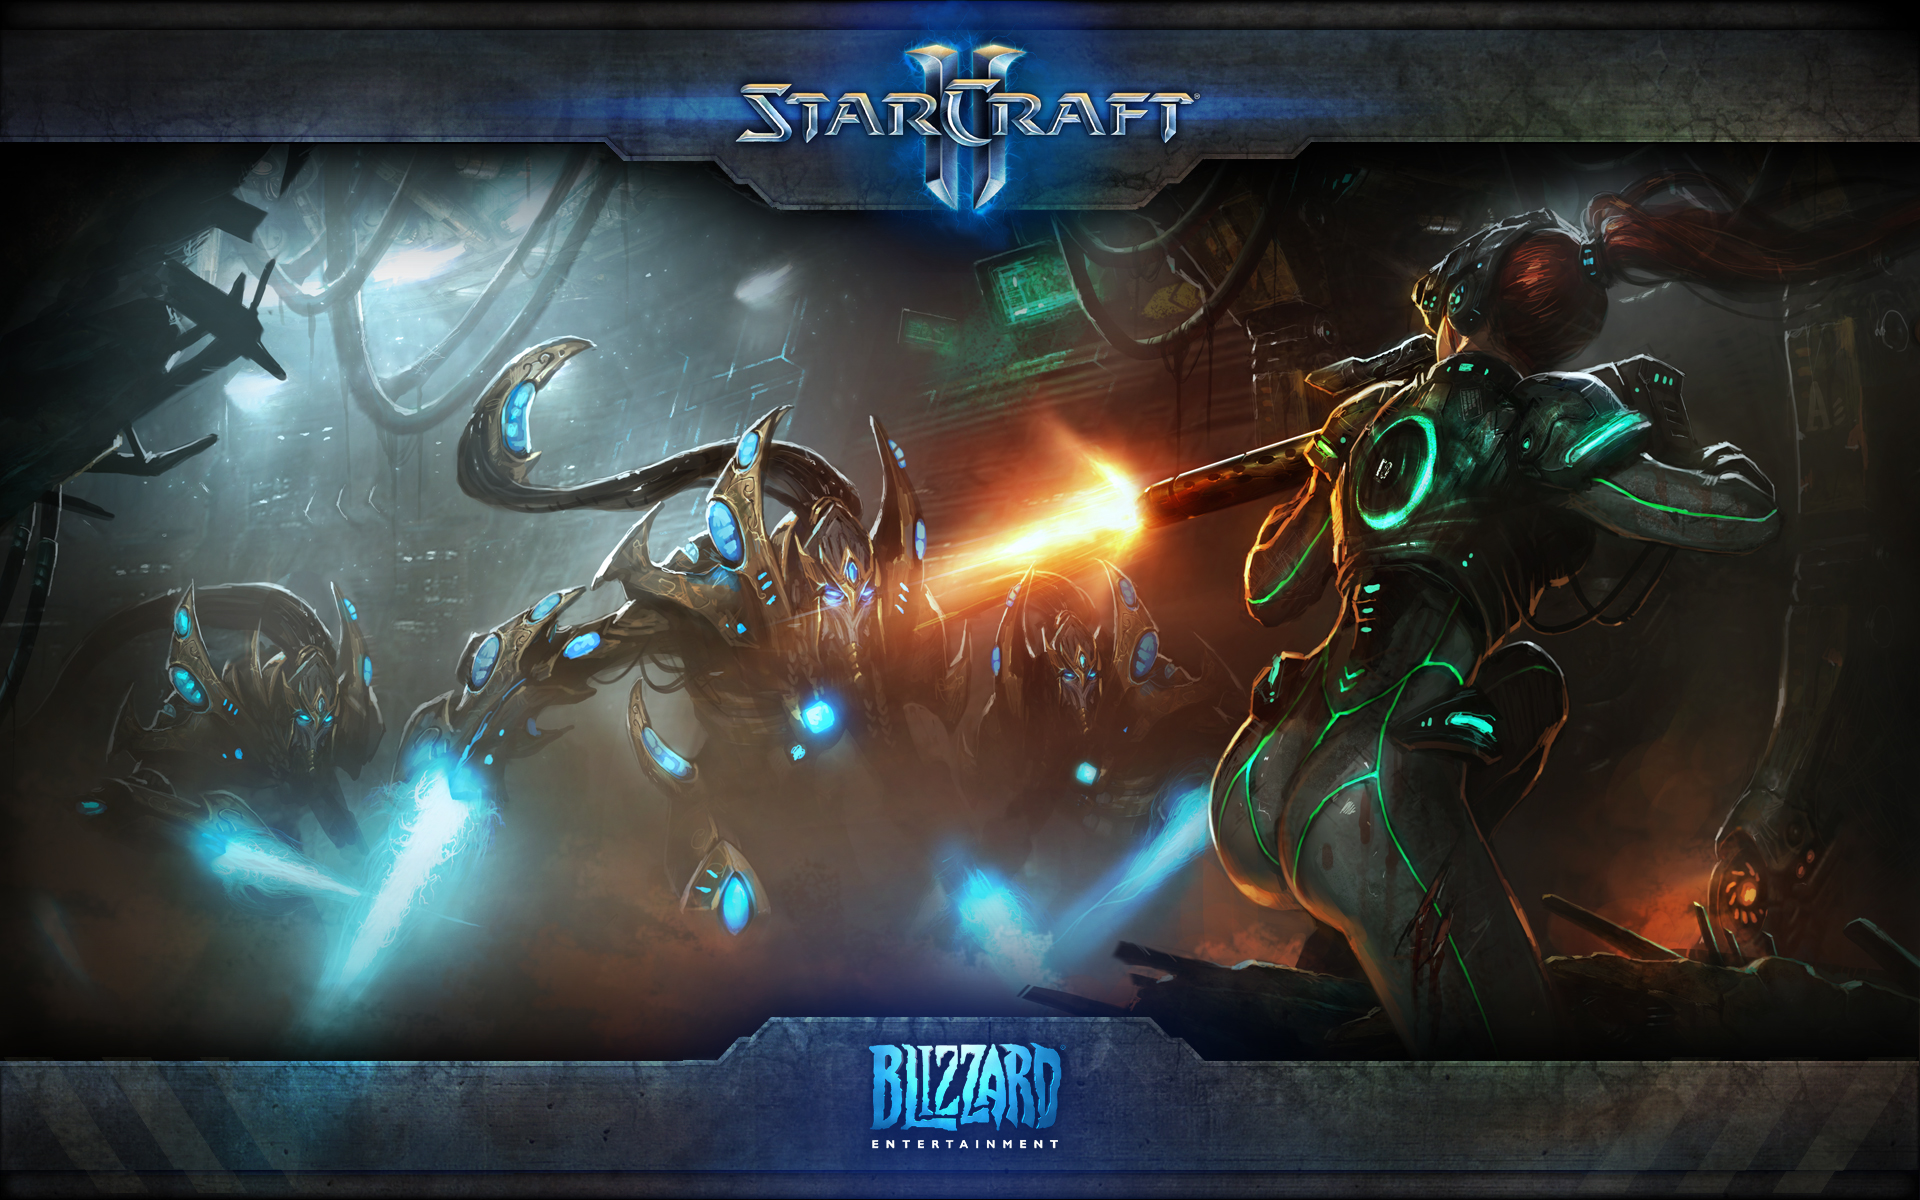 Starcraft Ii Wings Of Liberty 2010 Promotional Art Mobygames